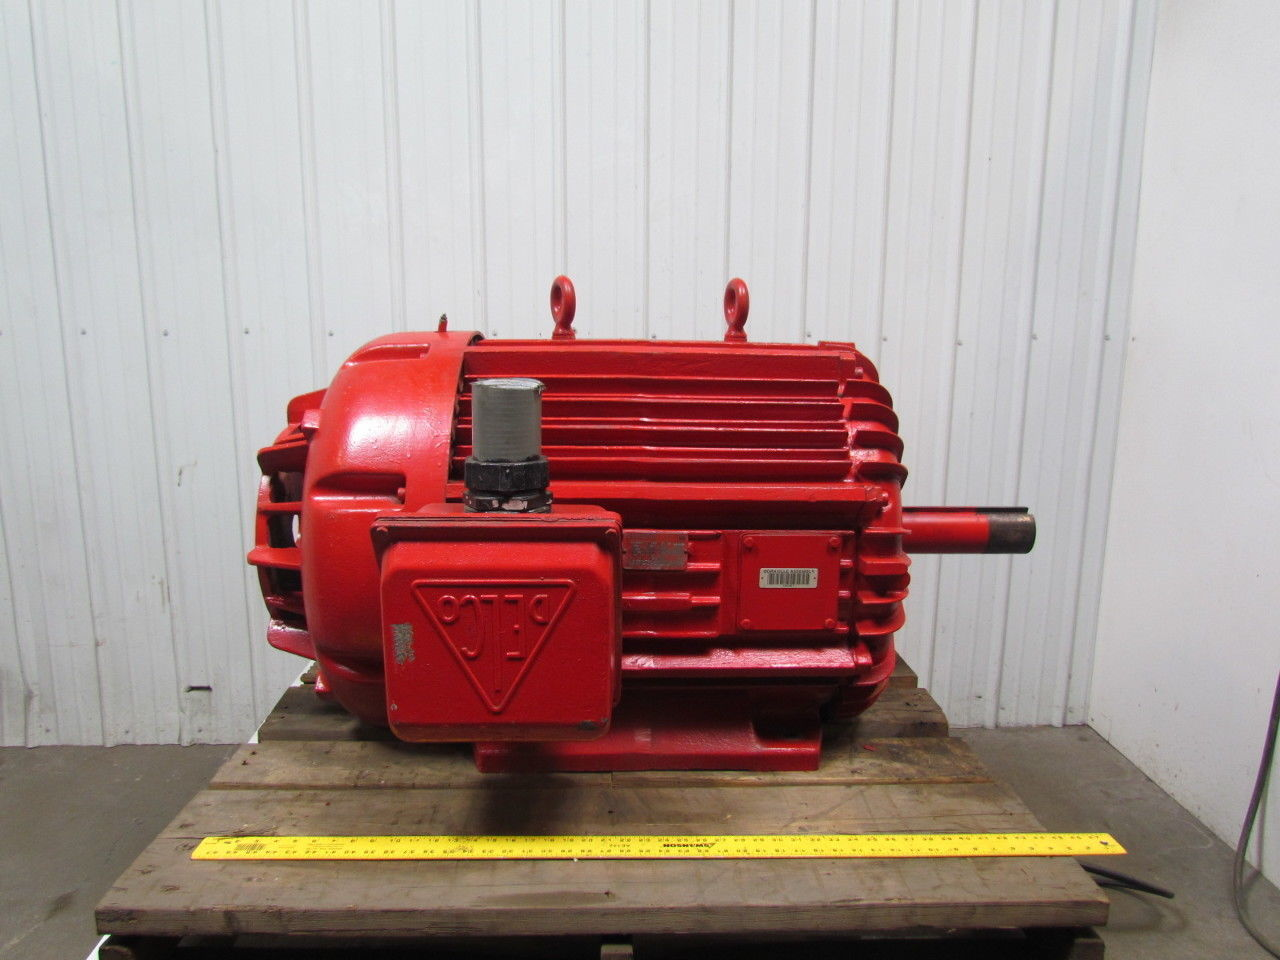 Delco N8109HBY9 200 HP Motor 1780 RPM 460 Volt Frame L505 460V 3ph